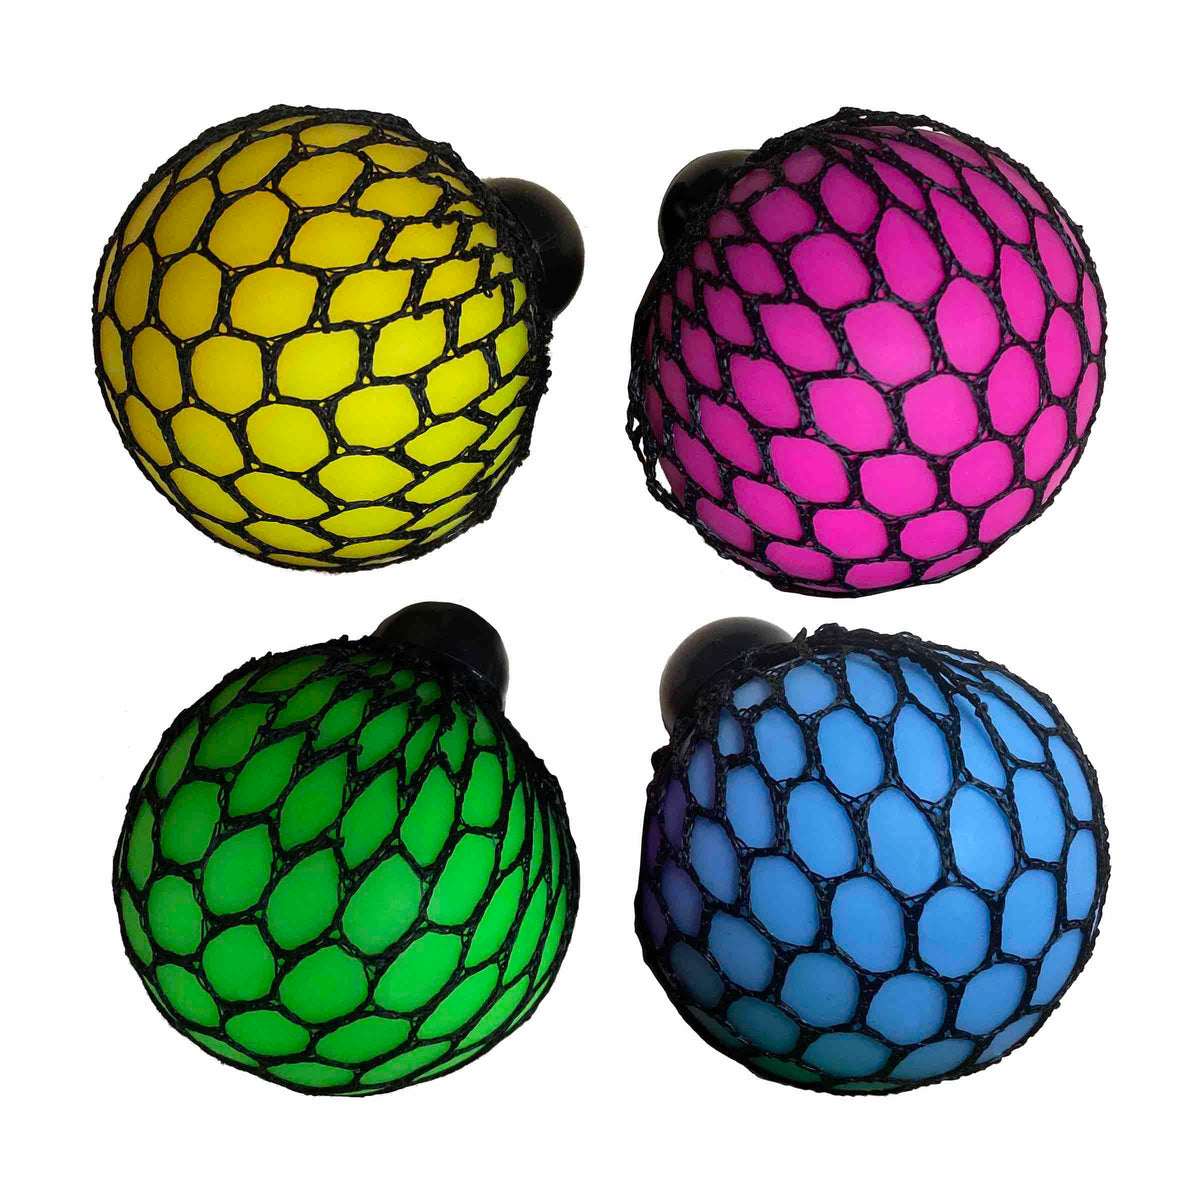 Mesh Squishy Ooze Ball - Set of 4